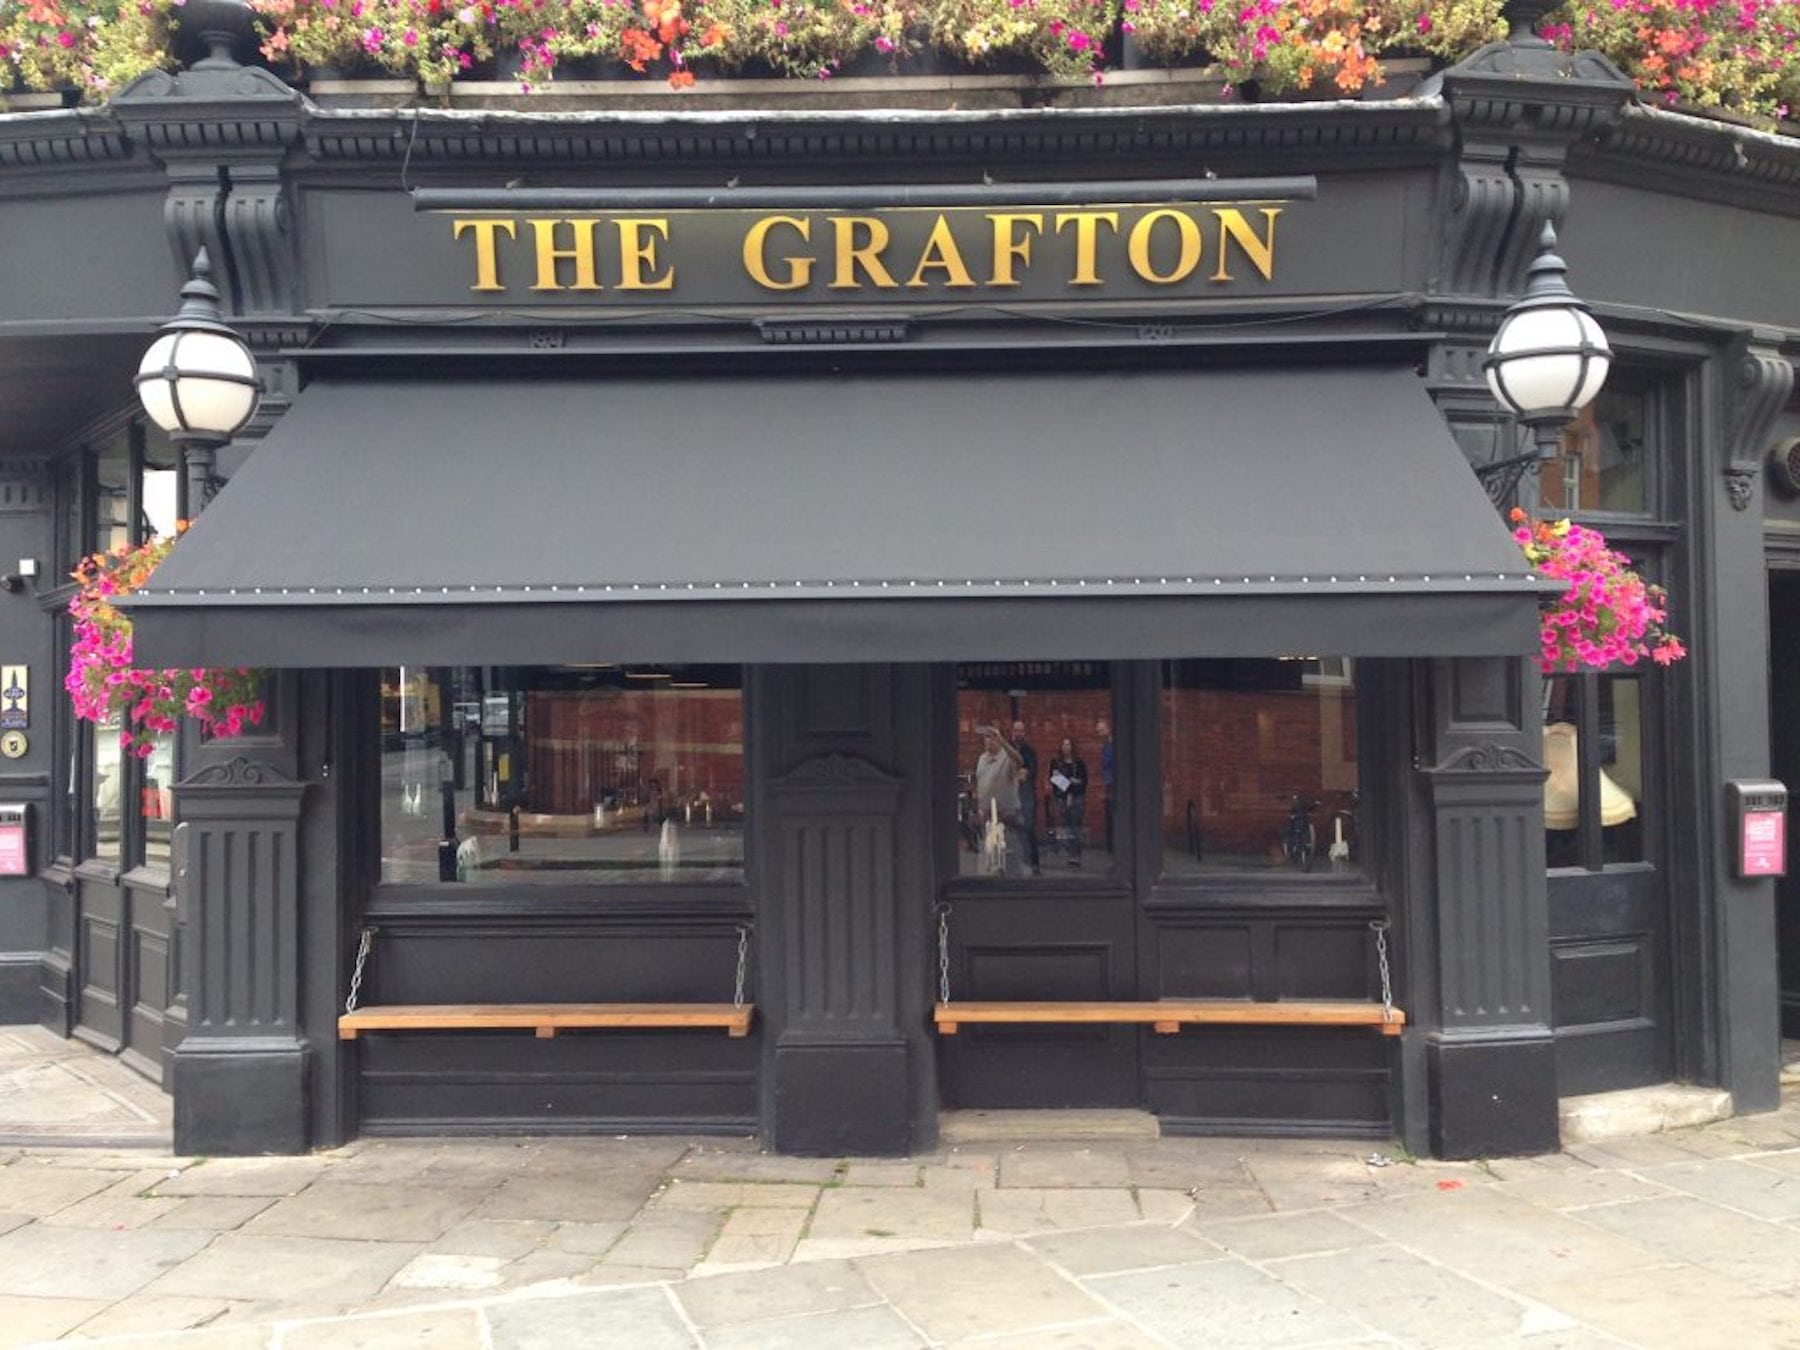 Victorian awnings alfresco solutions europe ltd for The grafton